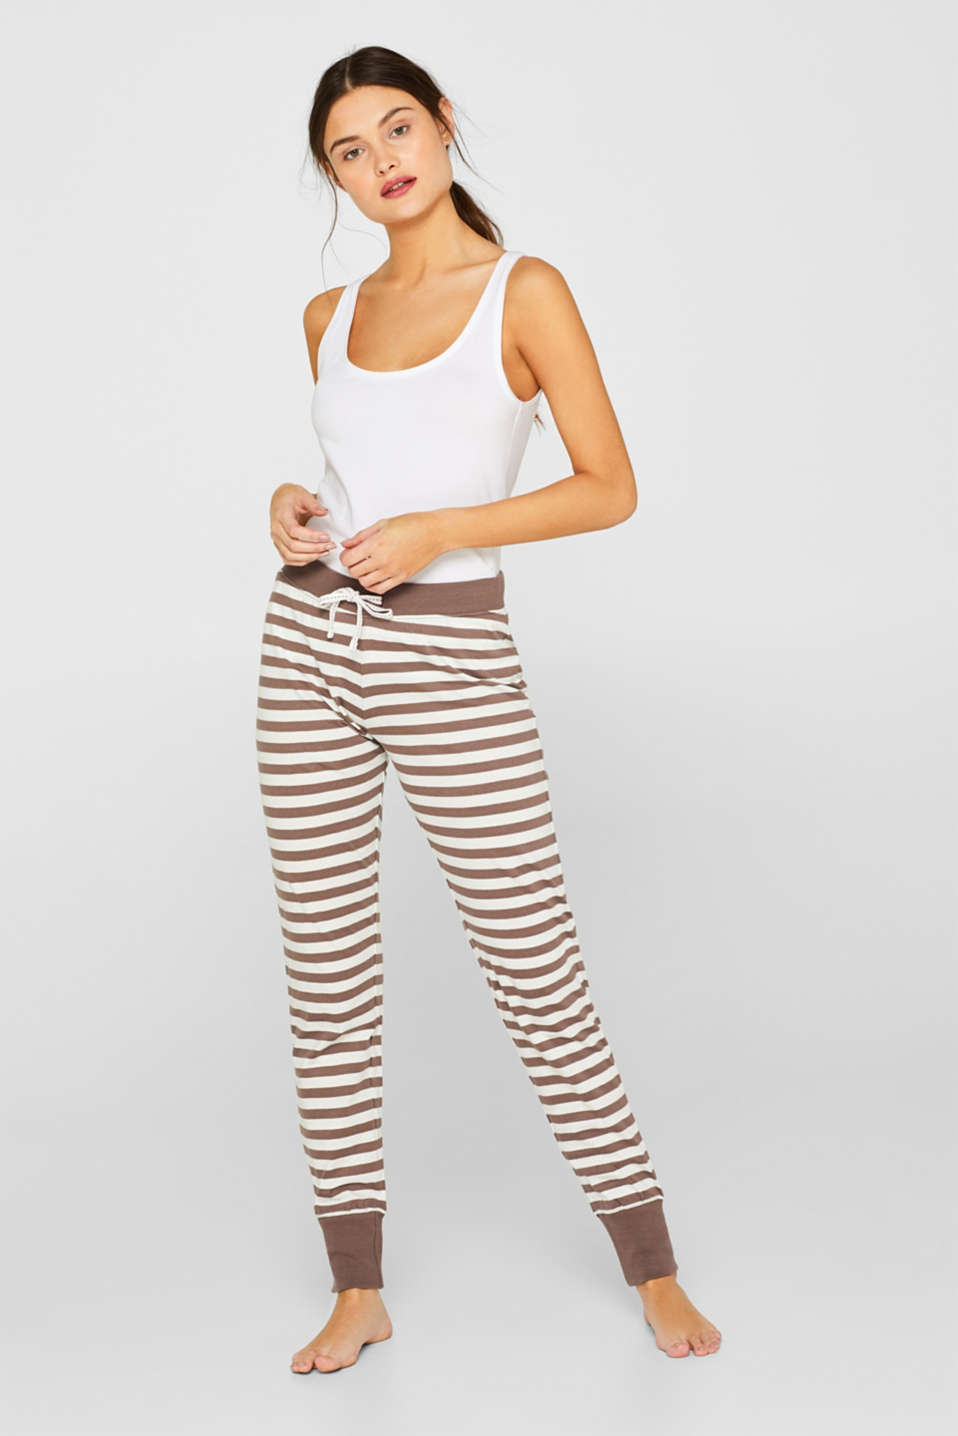 Esprit - Jersey trousers with a striped pattern, 100% cotton